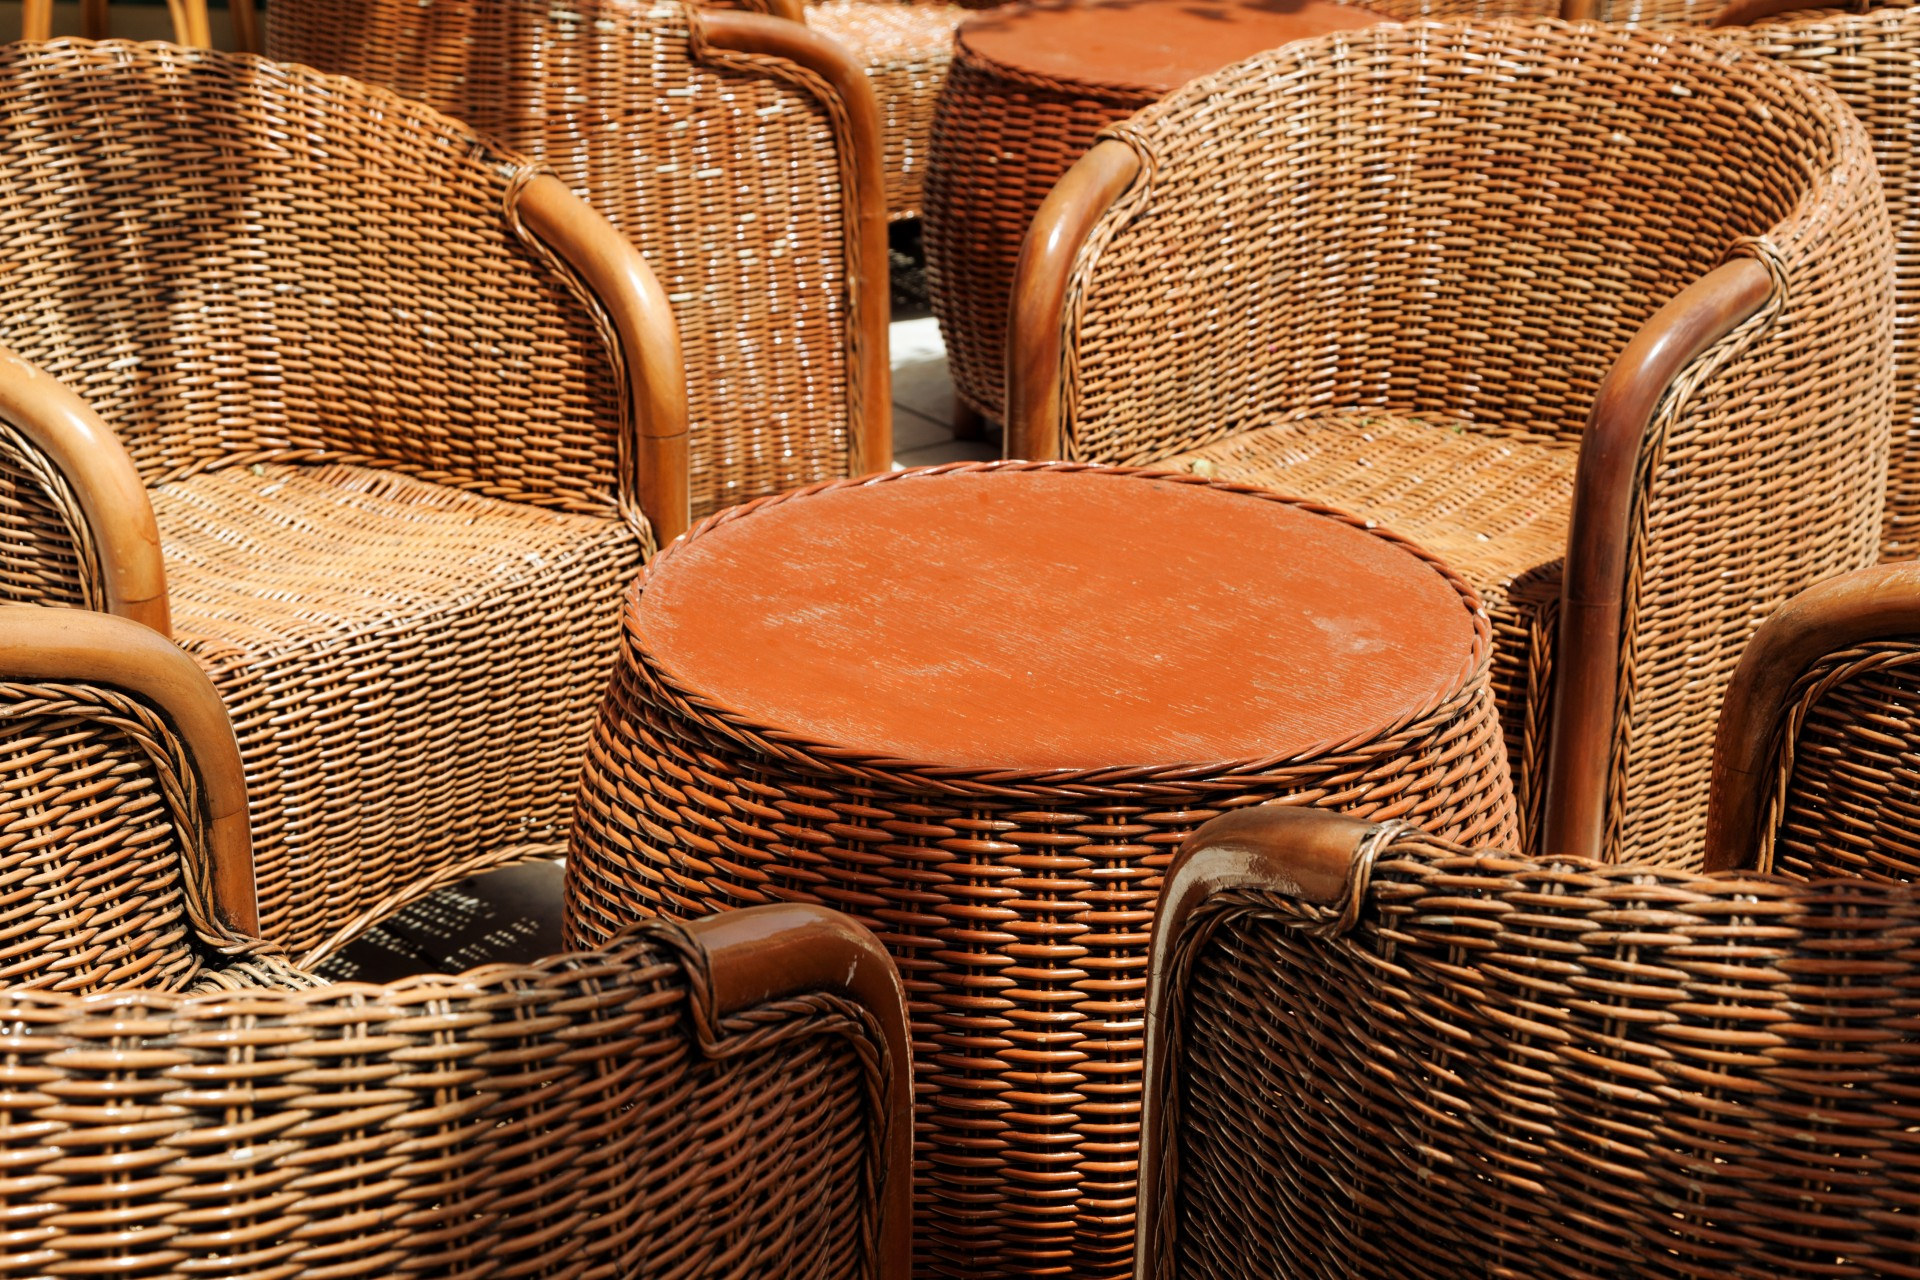 Wicker Furniture Free Stock Photo  Public Domain Pictures